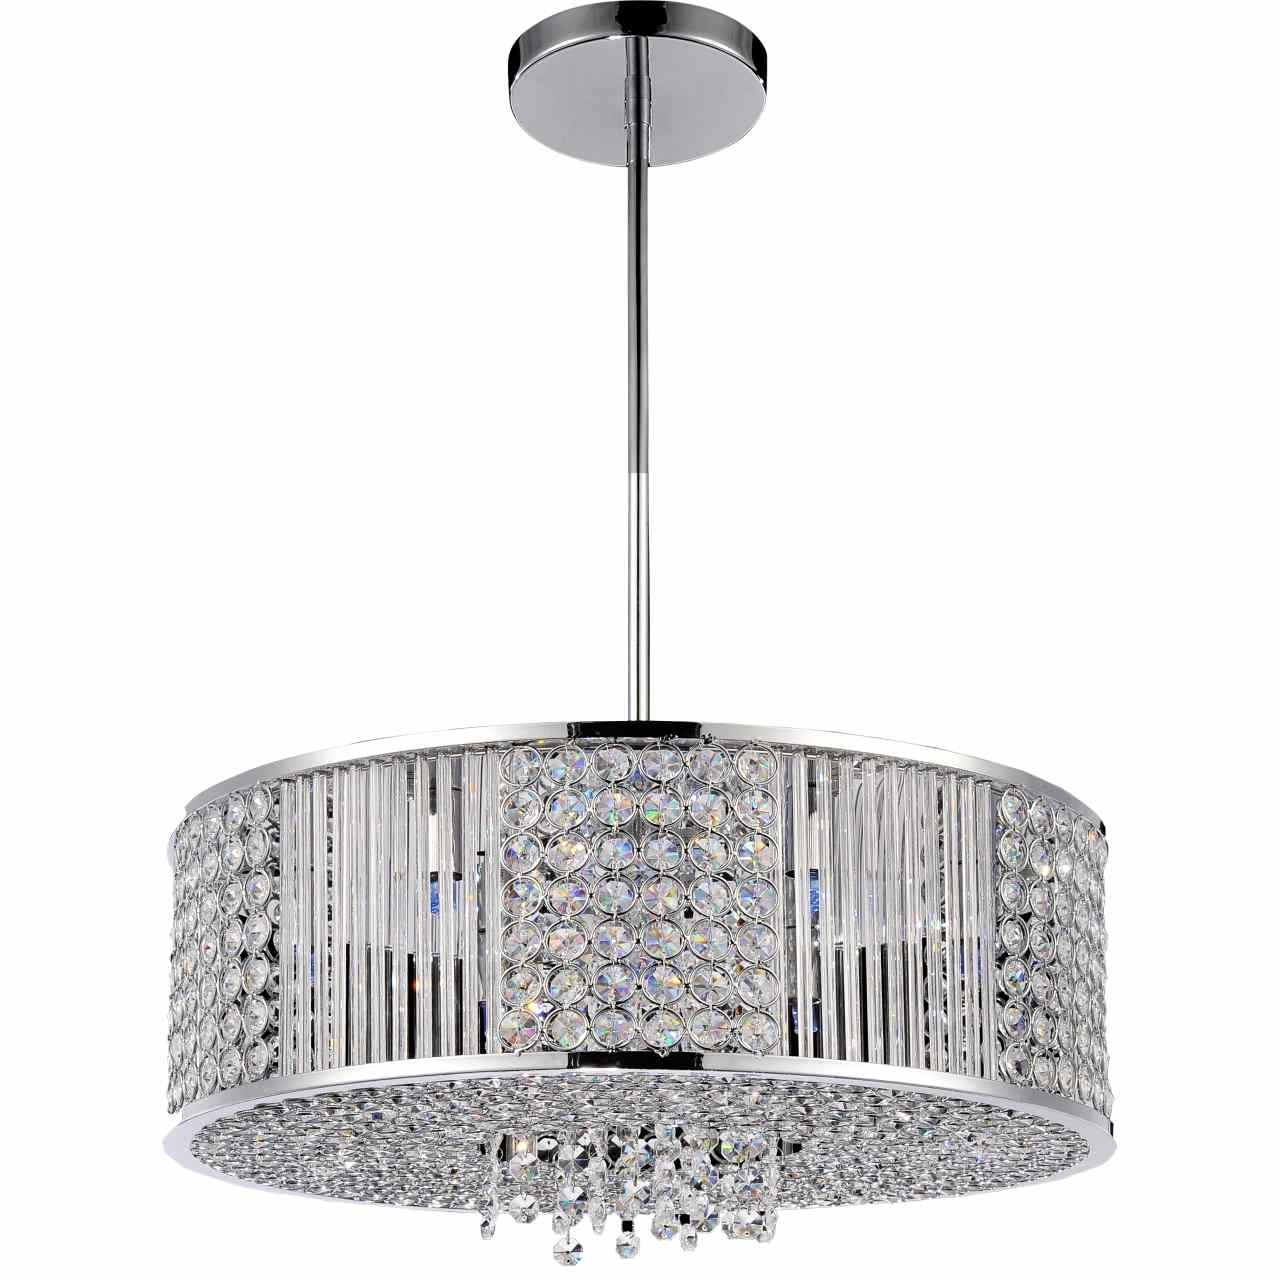 Modern Pendant Chandelier Lighting Within Preferred Brizzo Lighting Stores (View 11 of 15)